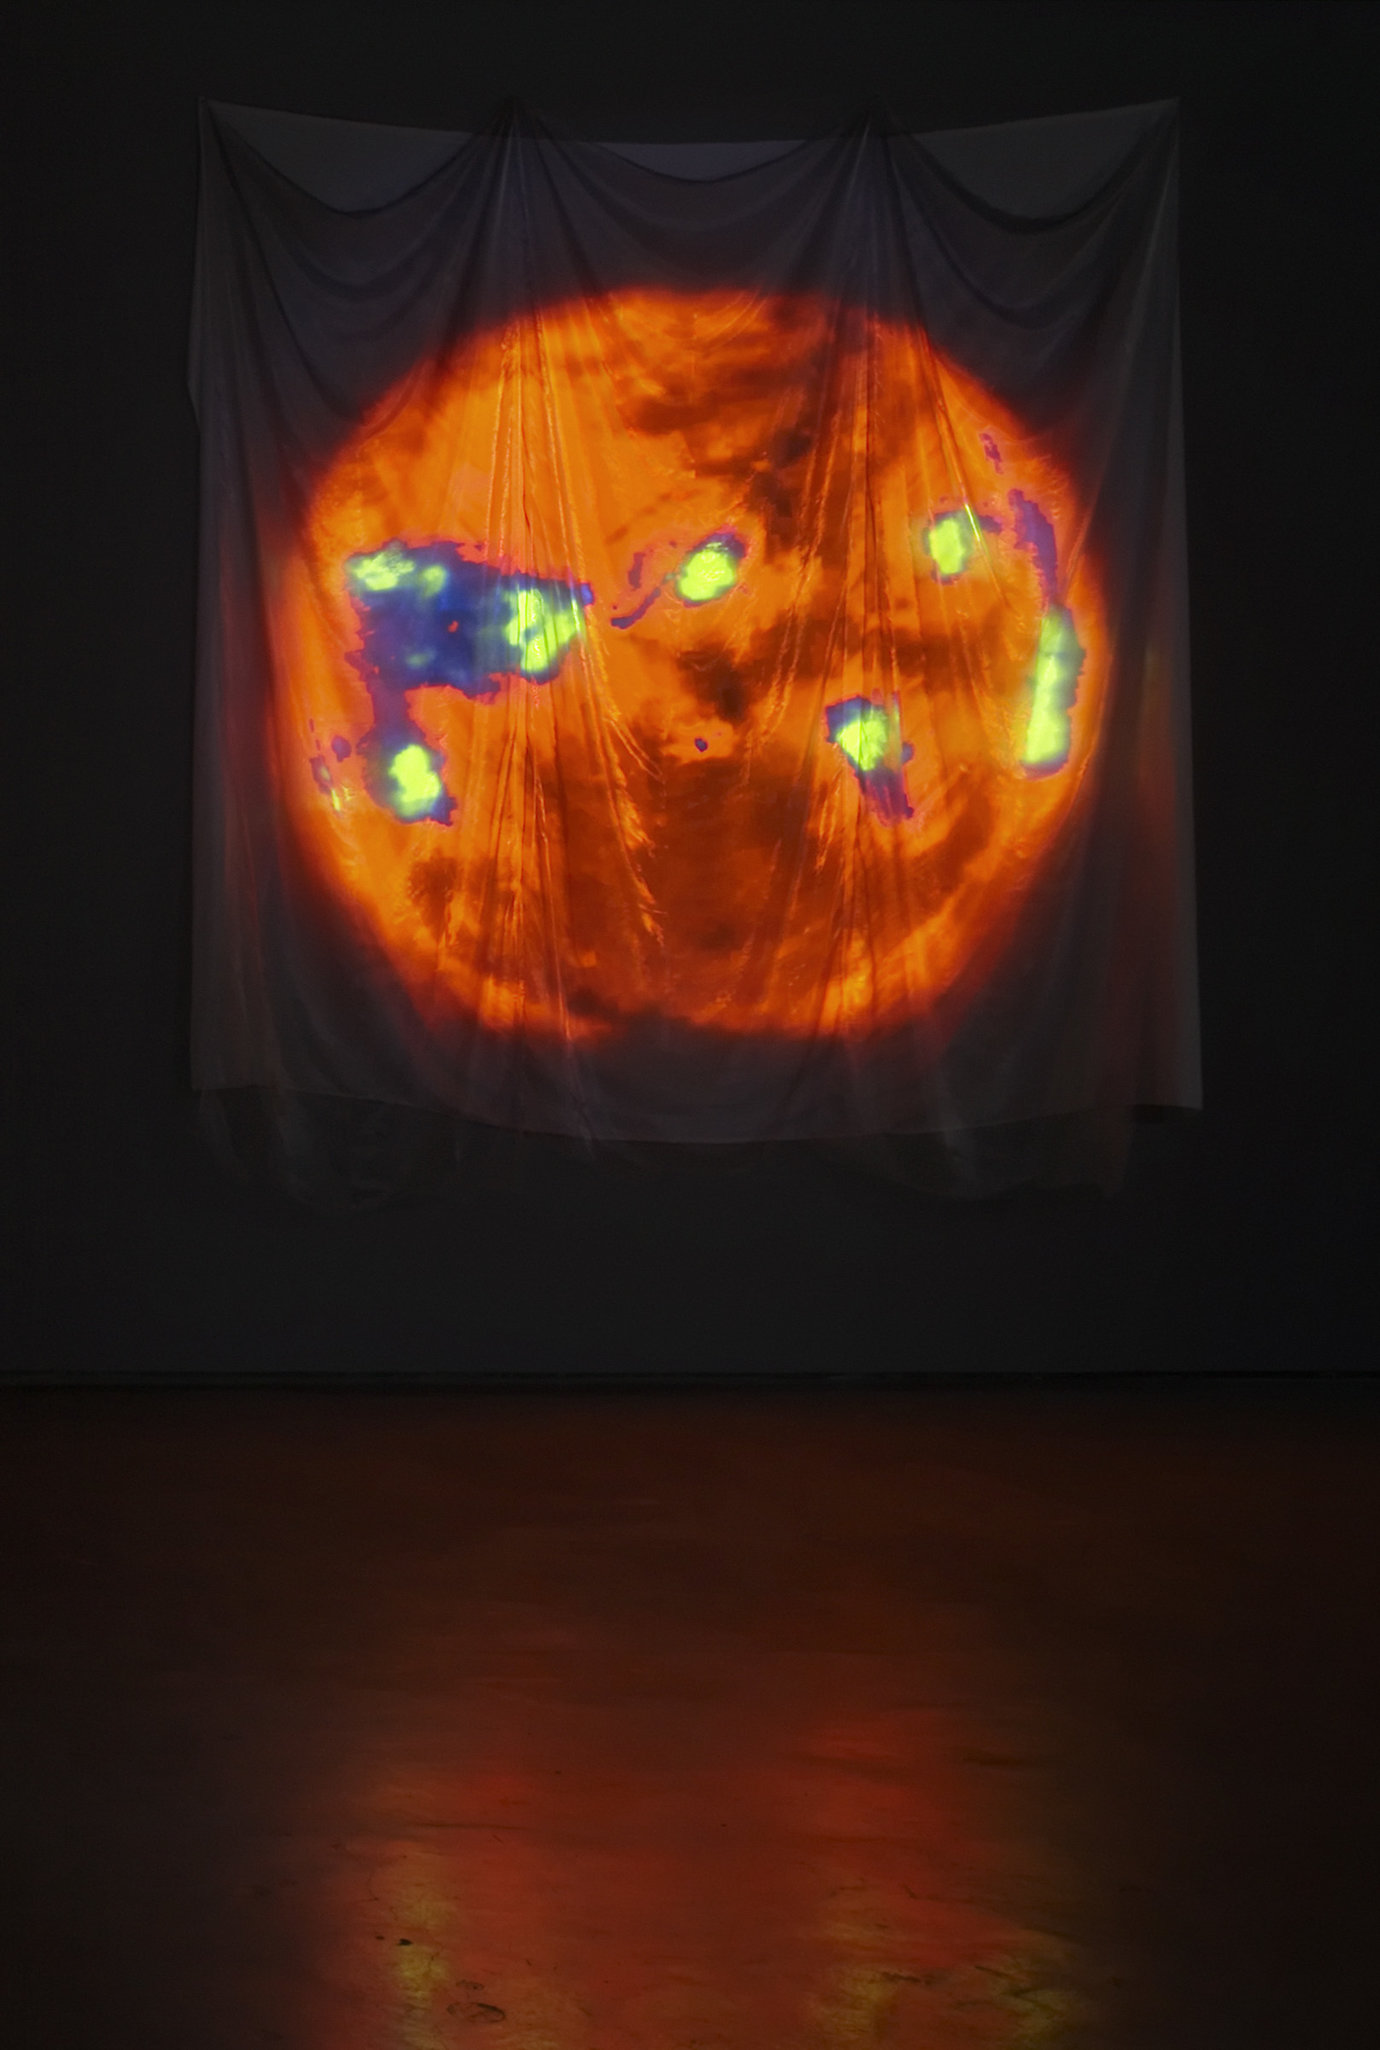 , 2007. cloth with random digital video projection, installation dimensions variable; cloth approximately 14' x 12'(426.7 cm x 365.8 cm).